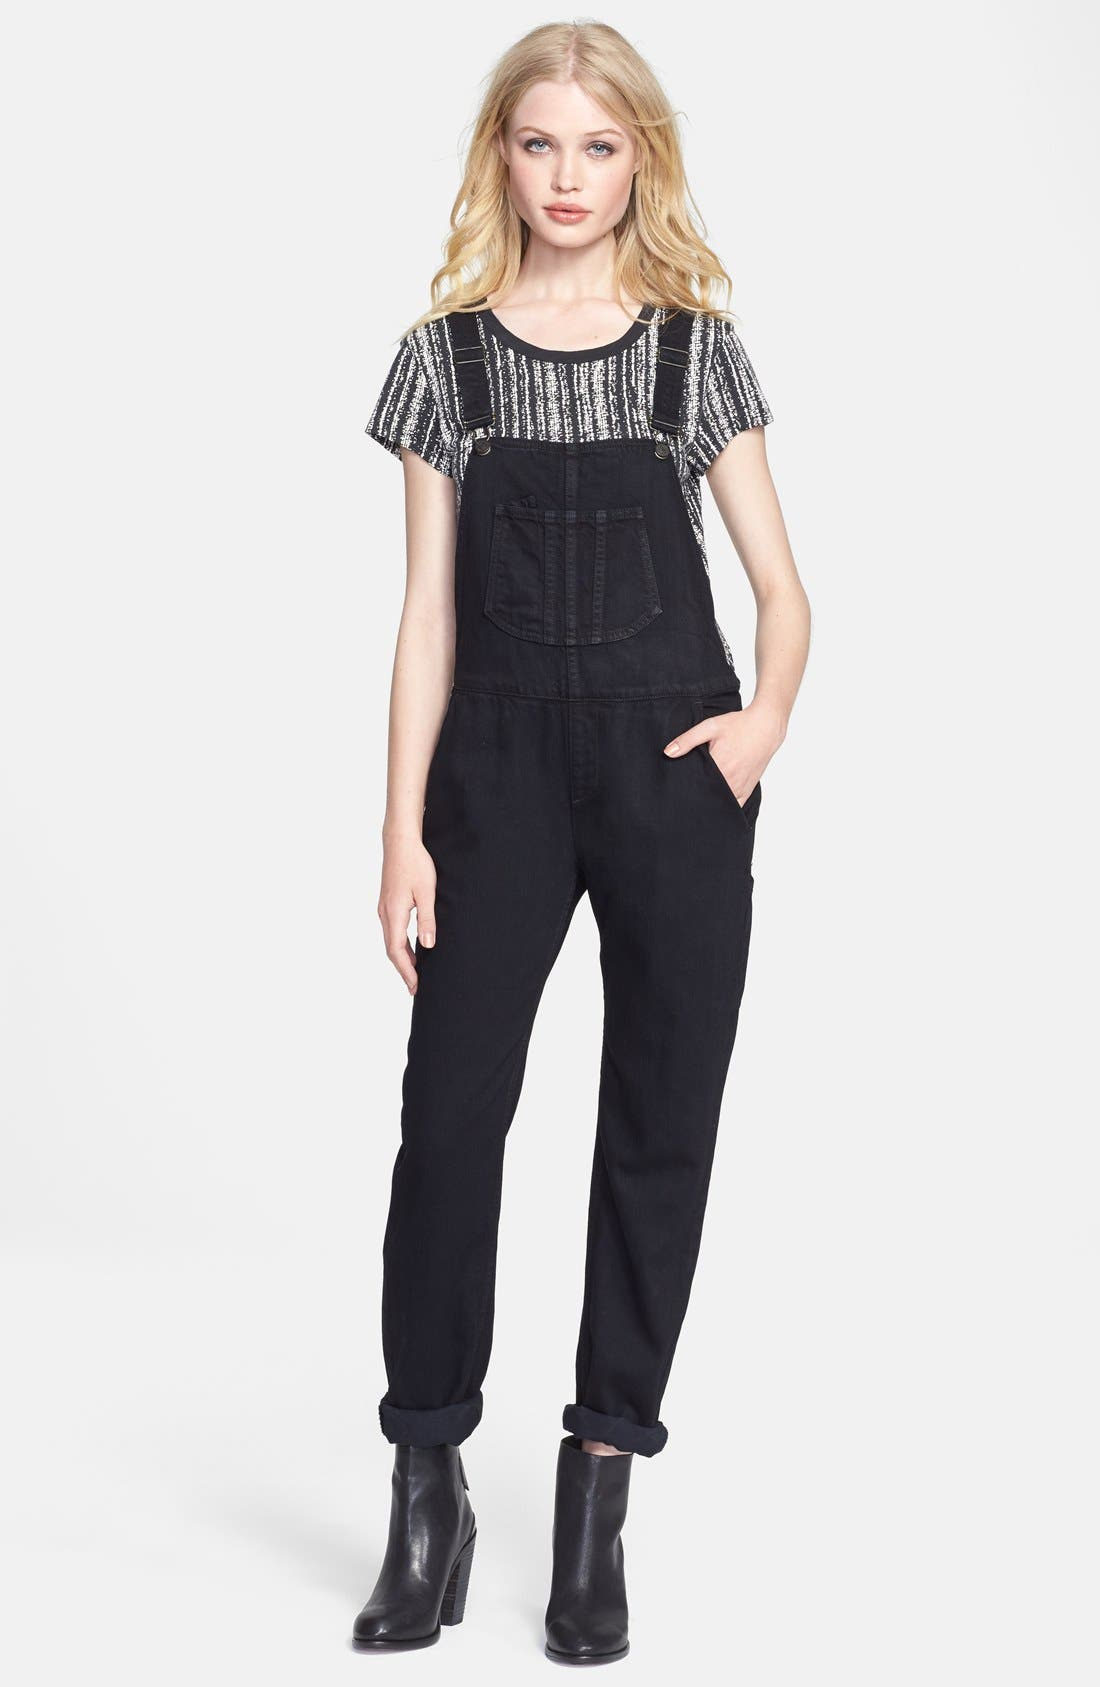 JEAN Overalls,                             Main thumbnail 1, color,                             005